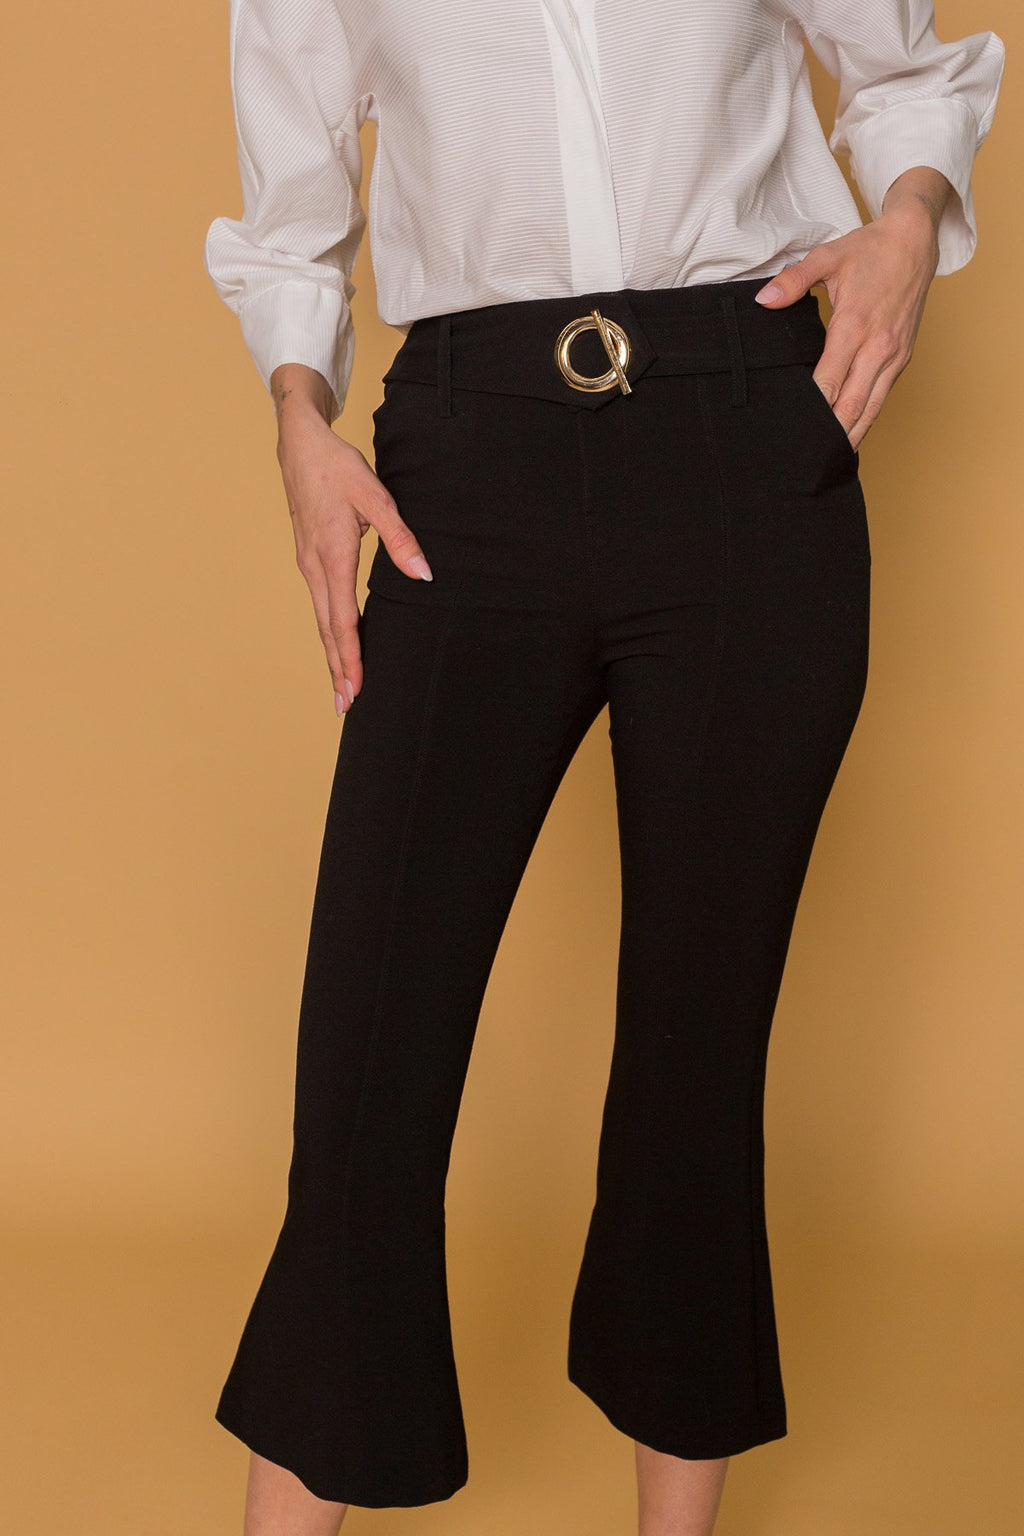 The 'O' Cropped Pants in Pants by J.ING - an L.A based women's fashion line